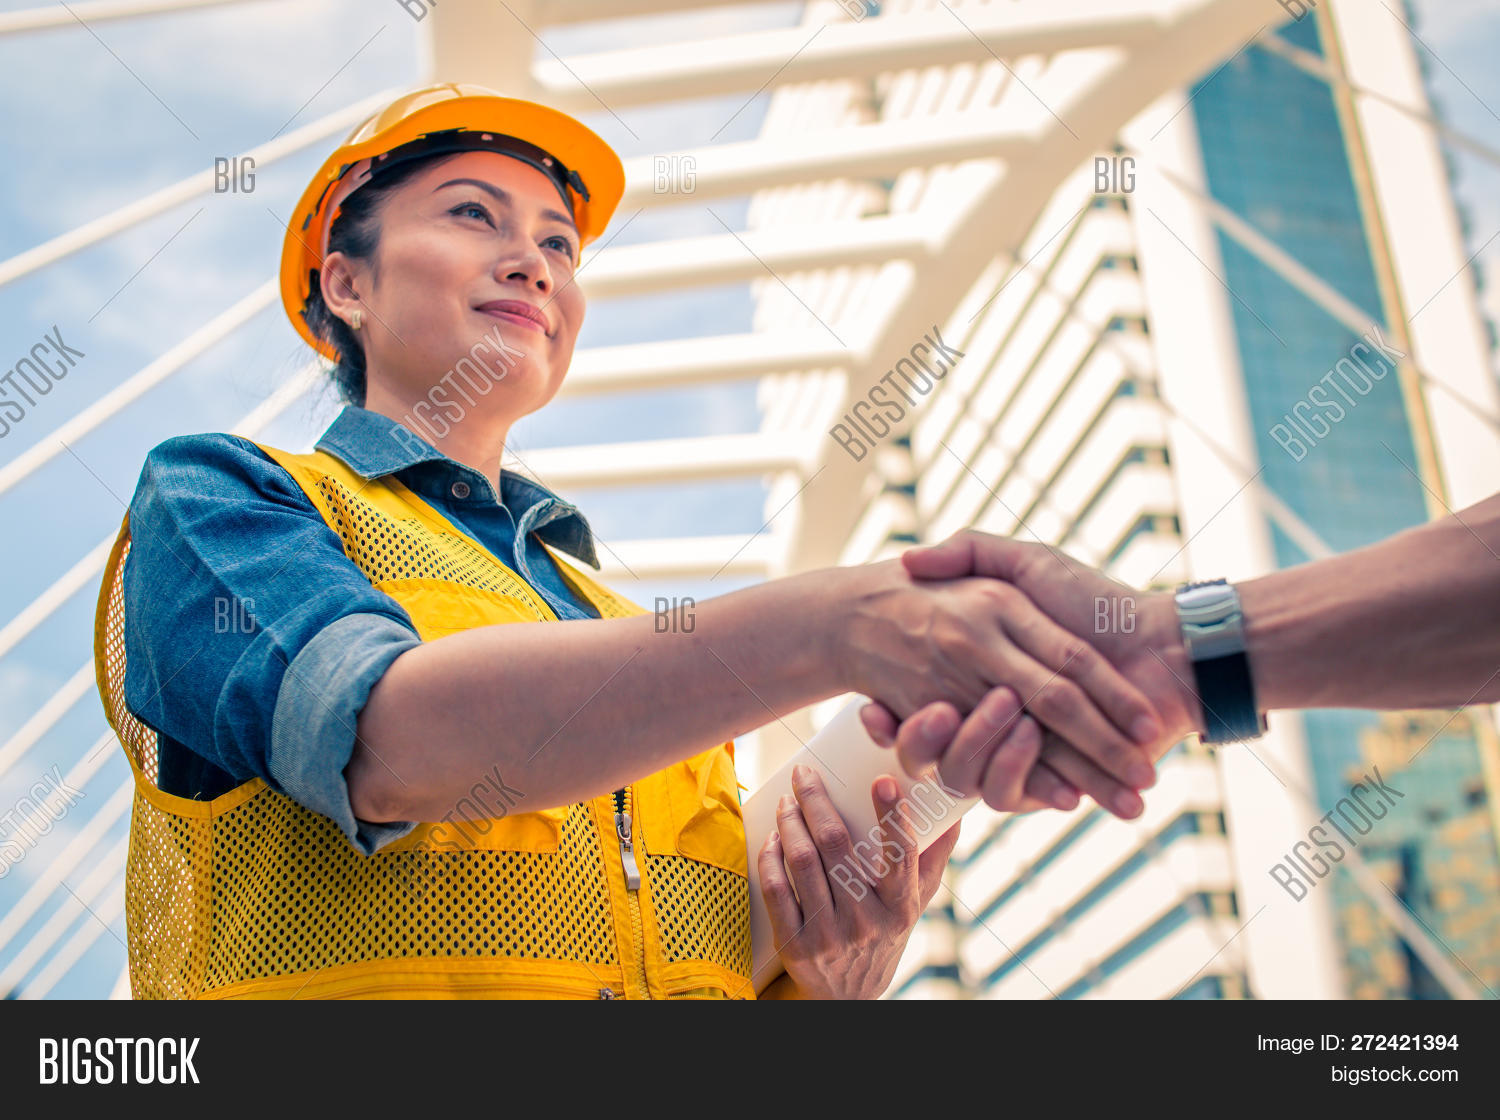 Construction And Engineer Concept. Construction Worker In Protective Uniform Shaking Hands Meeting F